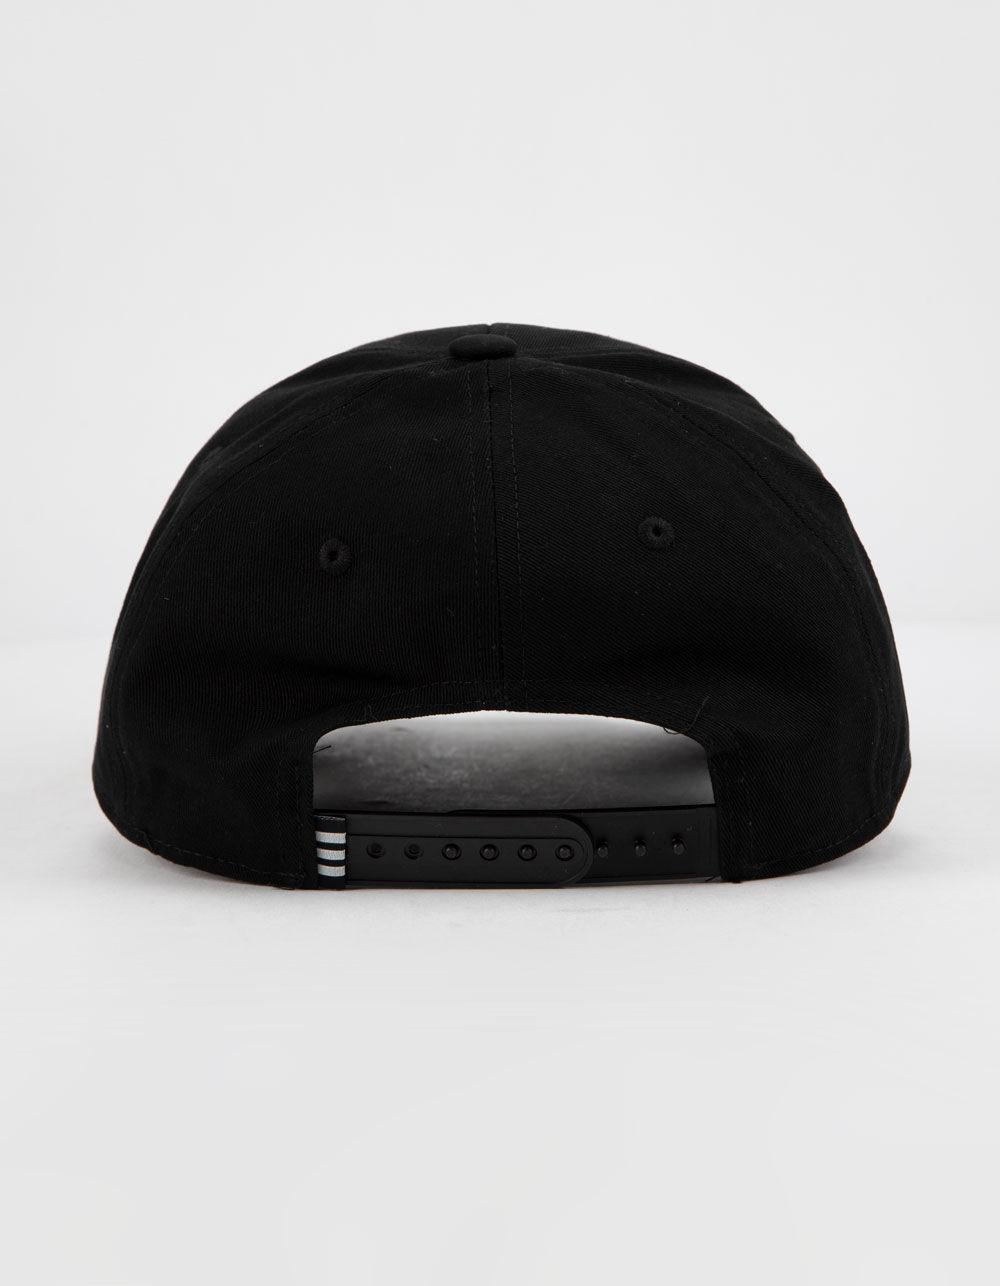 a86a485b359 Lyst - adidas Originals Trefoil Patch Black   White Mens Snapback Hat in  Black for Men